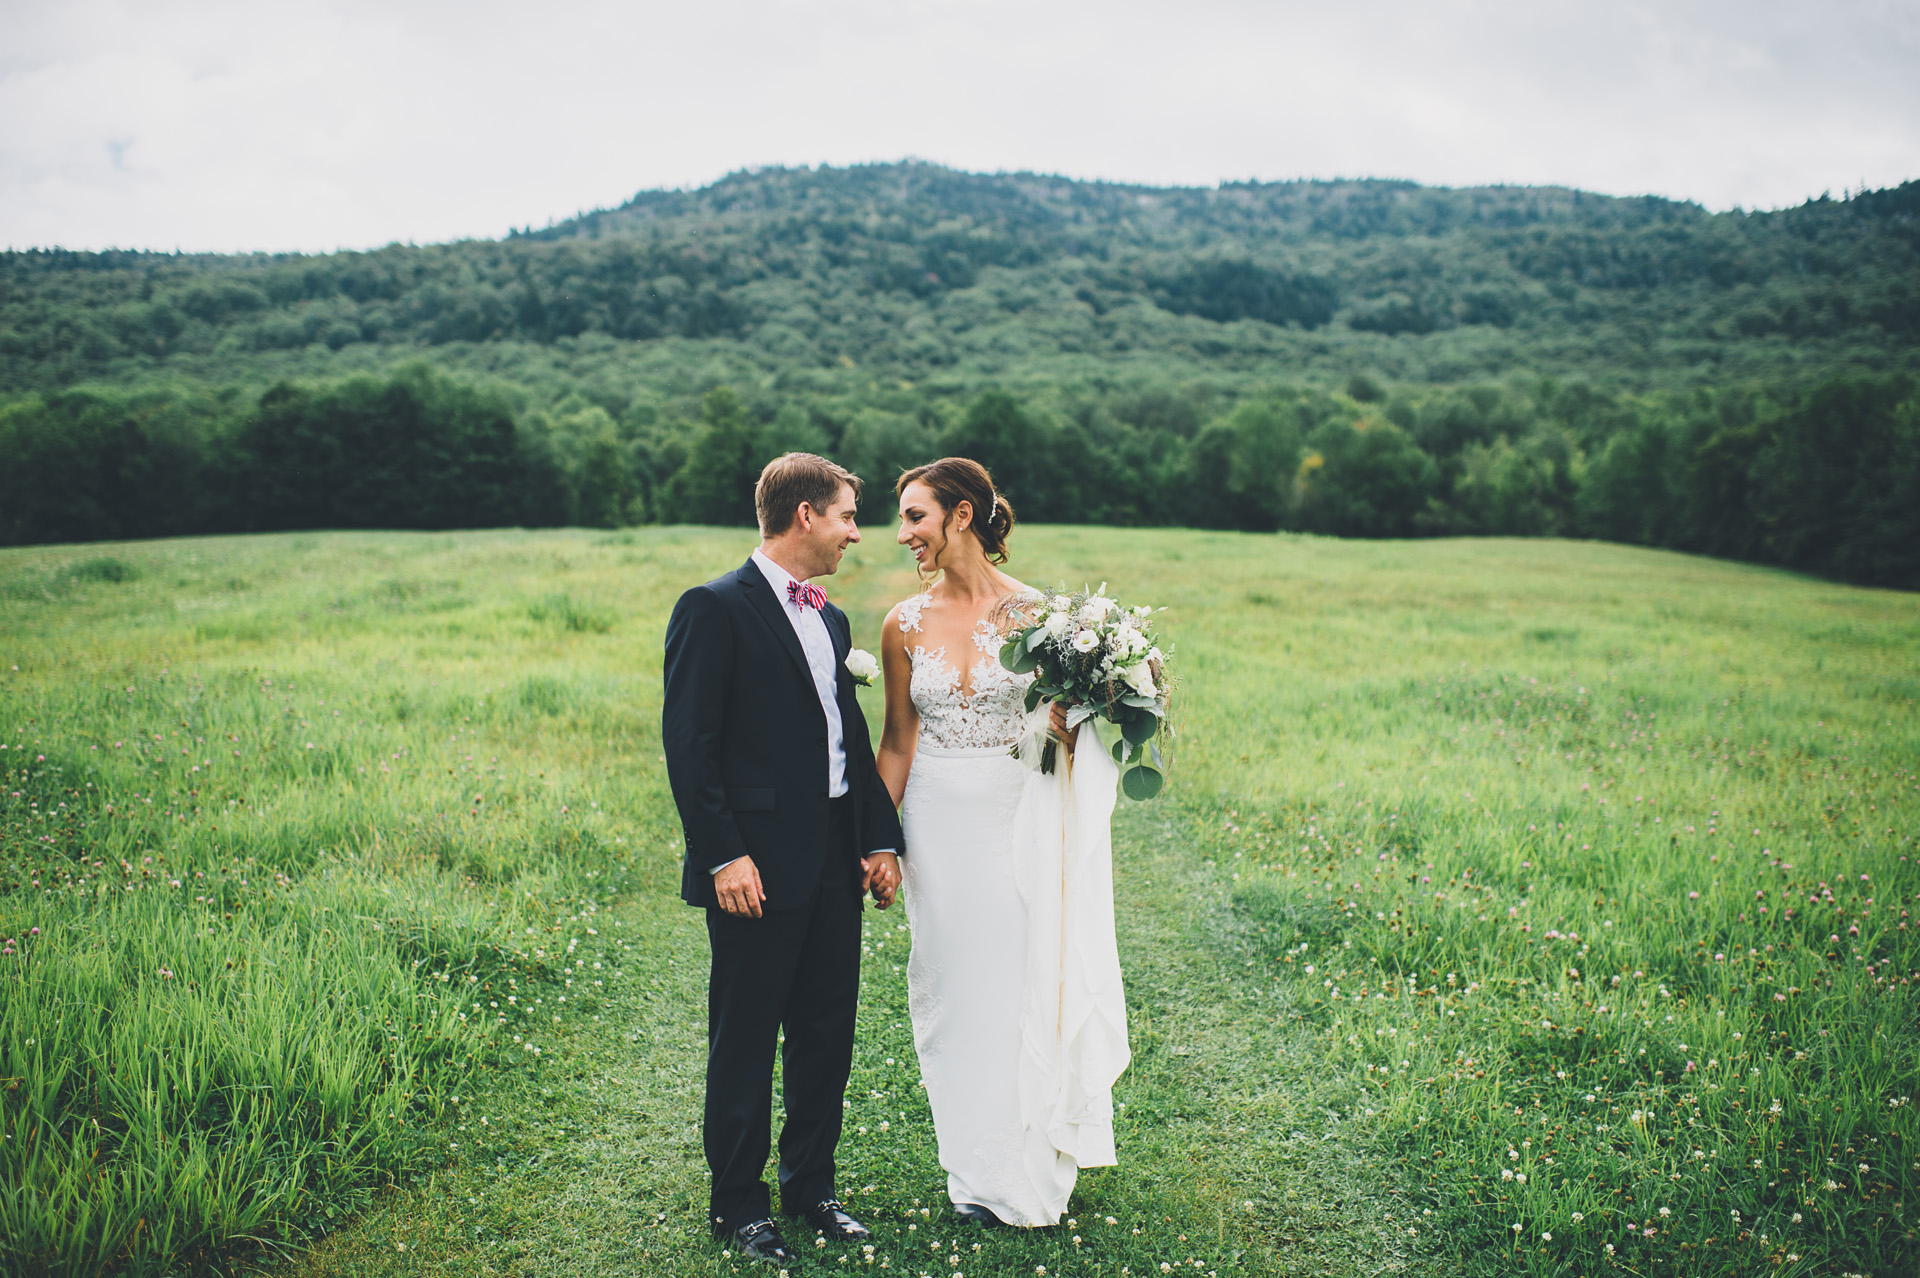 bliss ridge wedding photographer